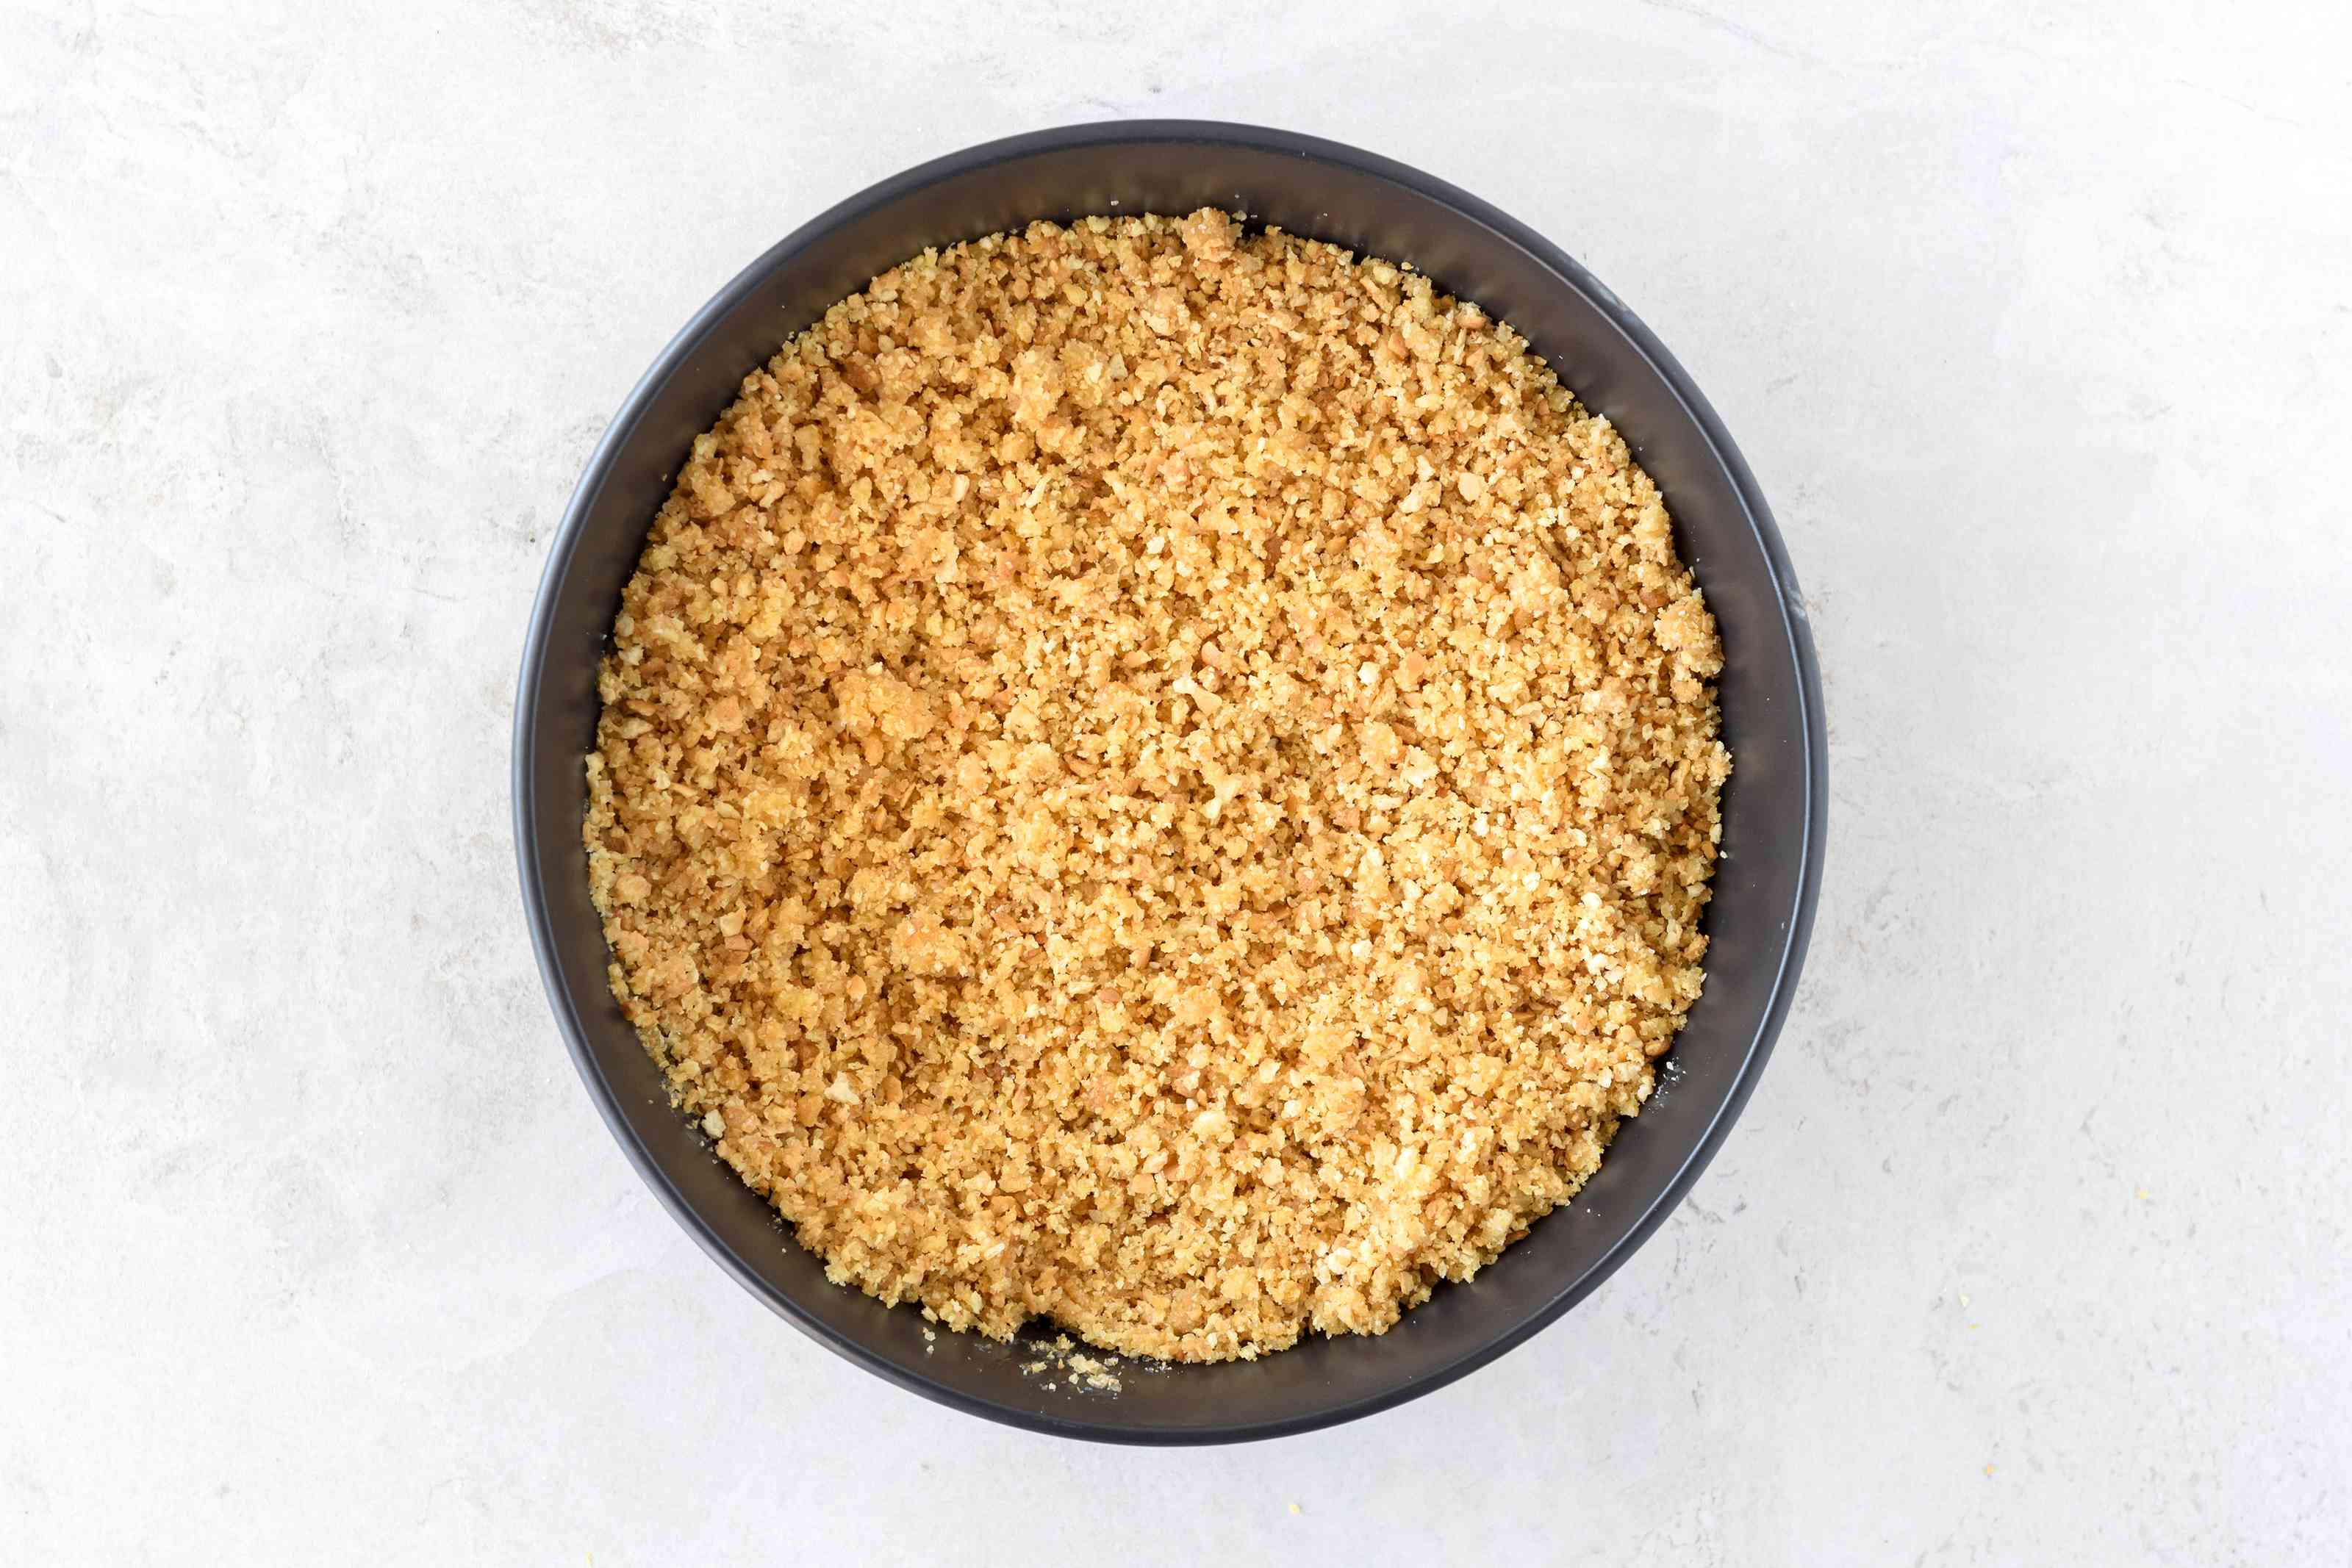 Dairy-free cheesecake crust ingredients combined in bowl